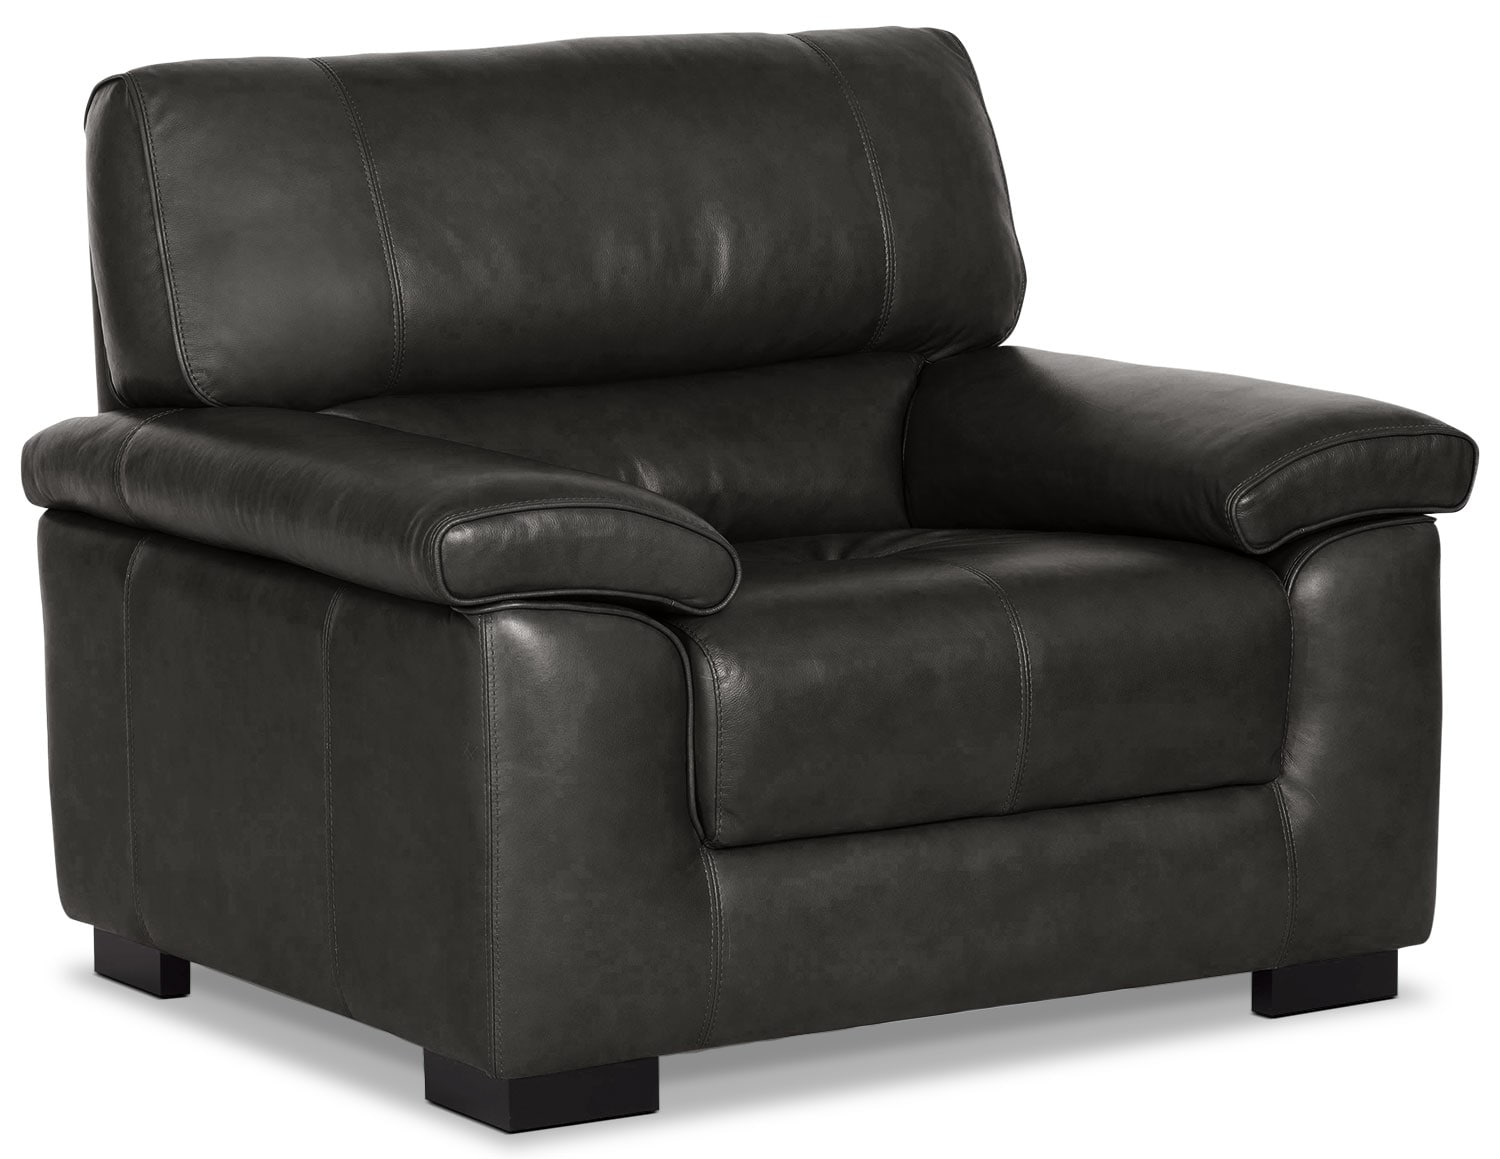 Chateau D Ax 100 Genuine Leather Chair Charcoal United Furniture Warehouse